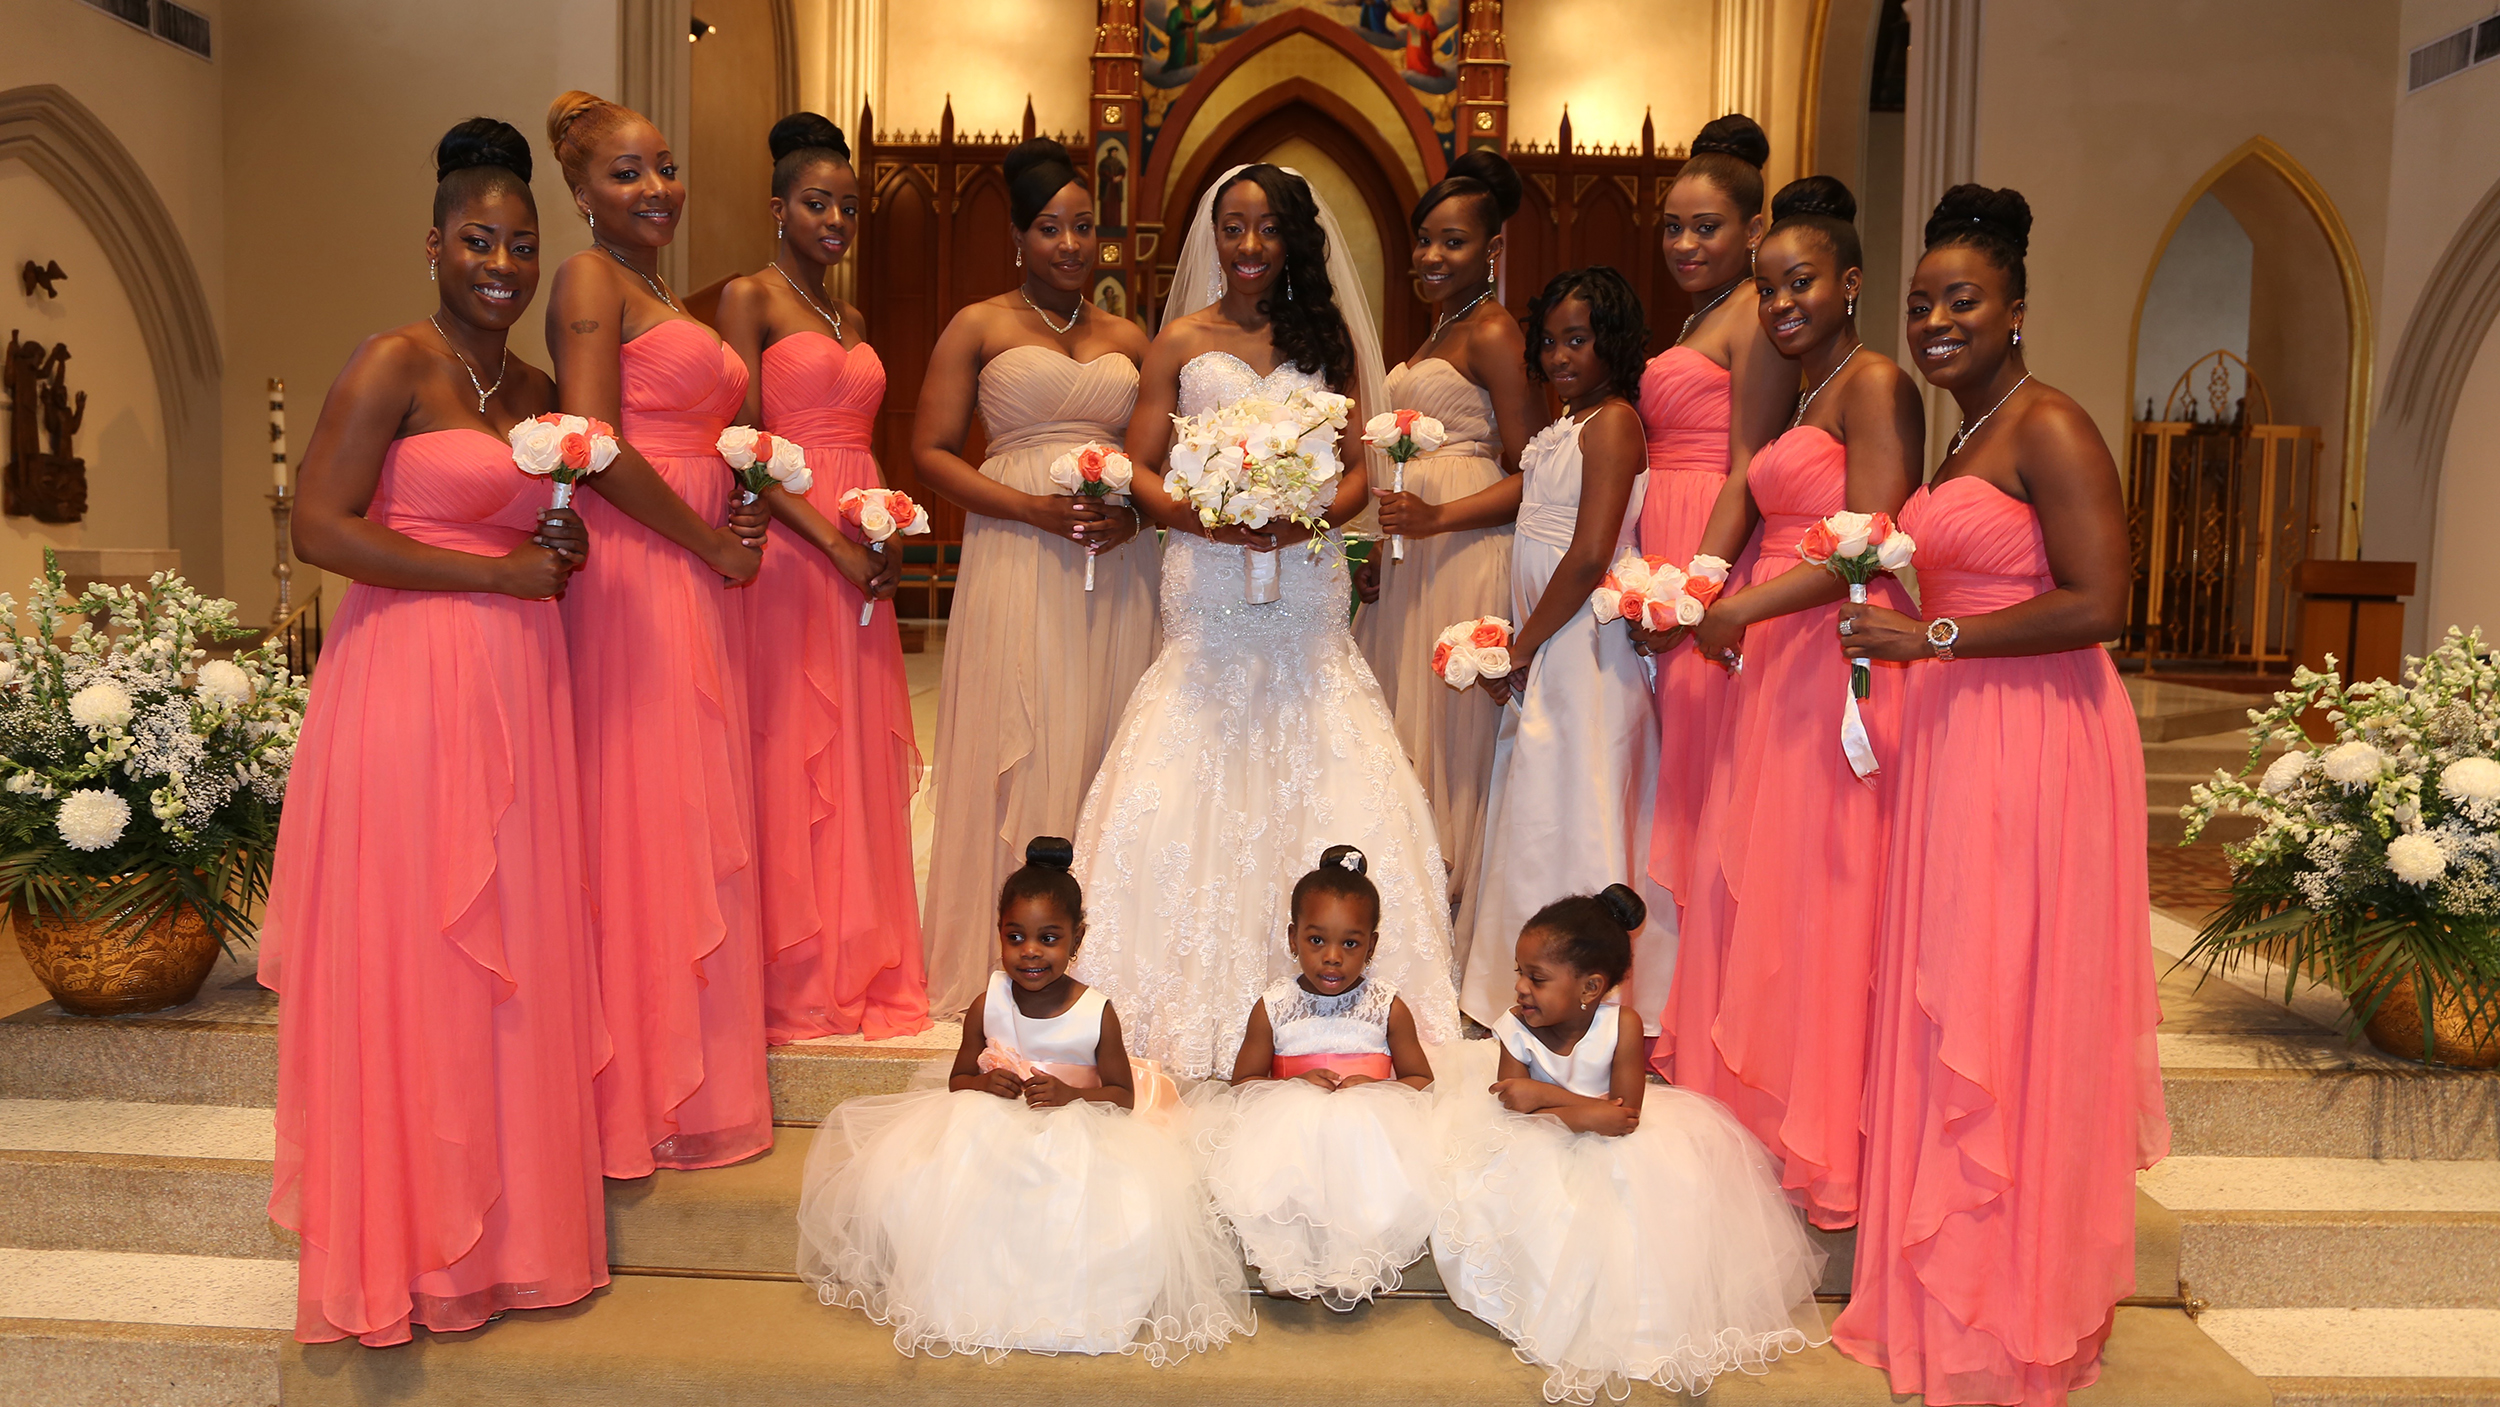 Bridesmaids And Bridal Party Tips What I Wish I Knew